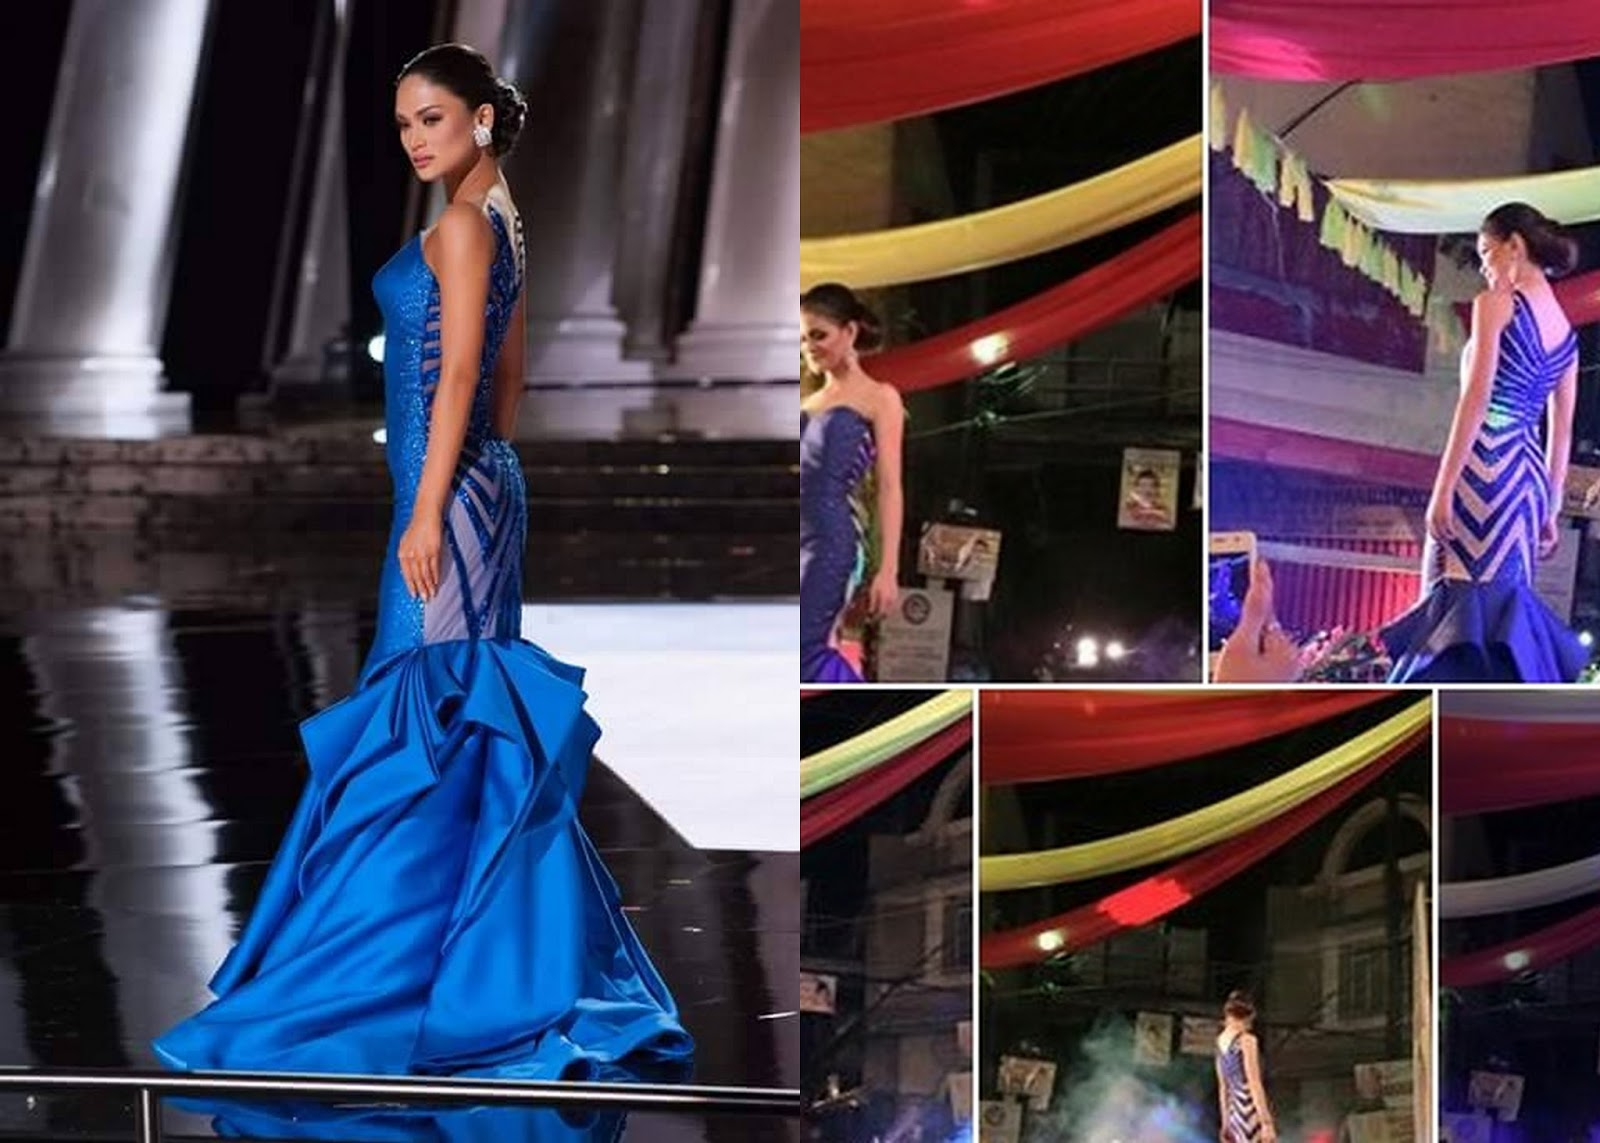 The replica blue gown of Miss Universe 2015 Pia Wurtzbach is spotted ...